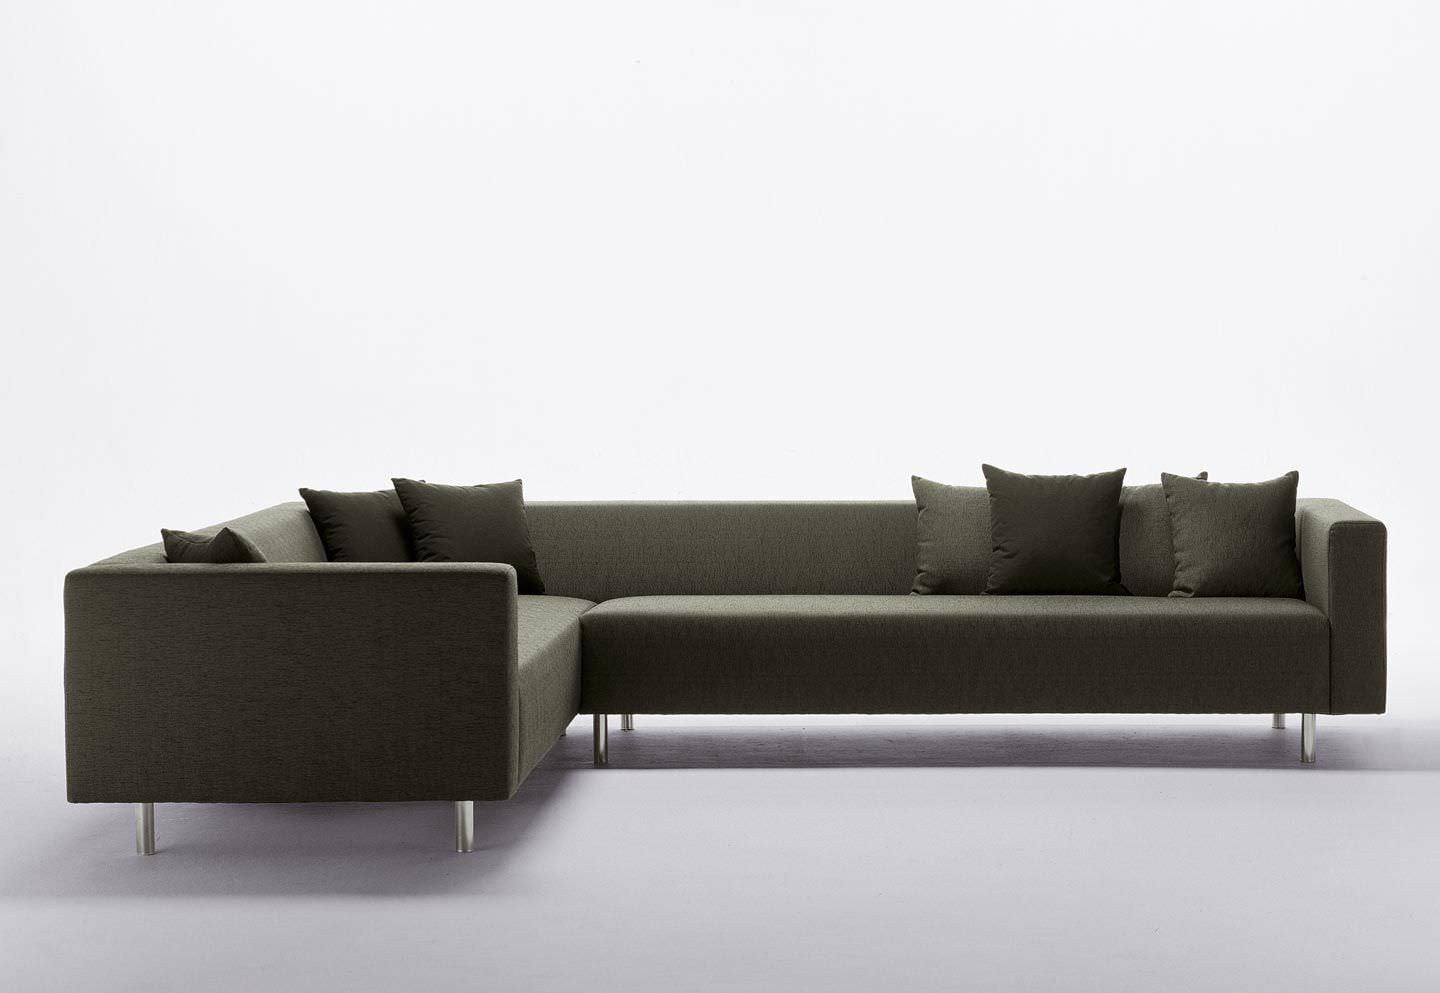 Bon Modular Sofa / Contemporary / Wood / Metal ...